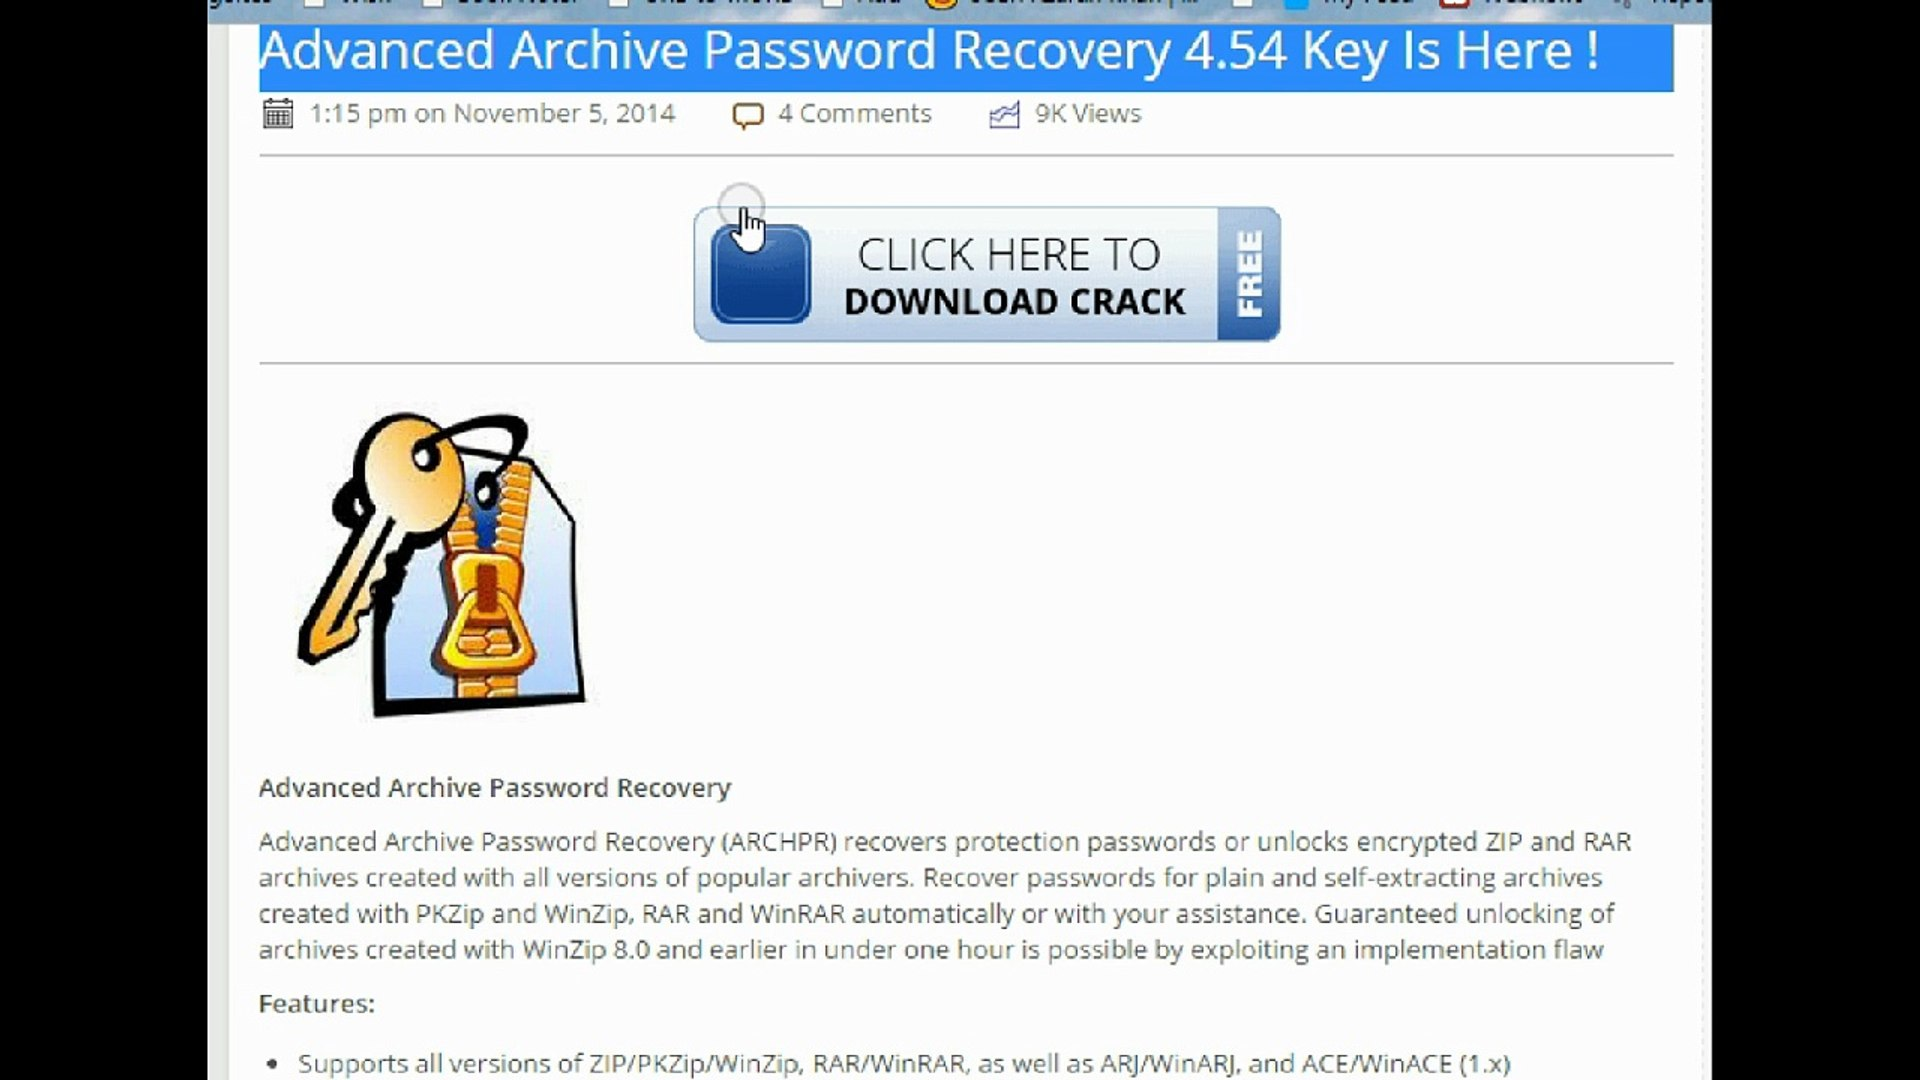 Advanced Archive Password Recovery 4 54 Key Is Here